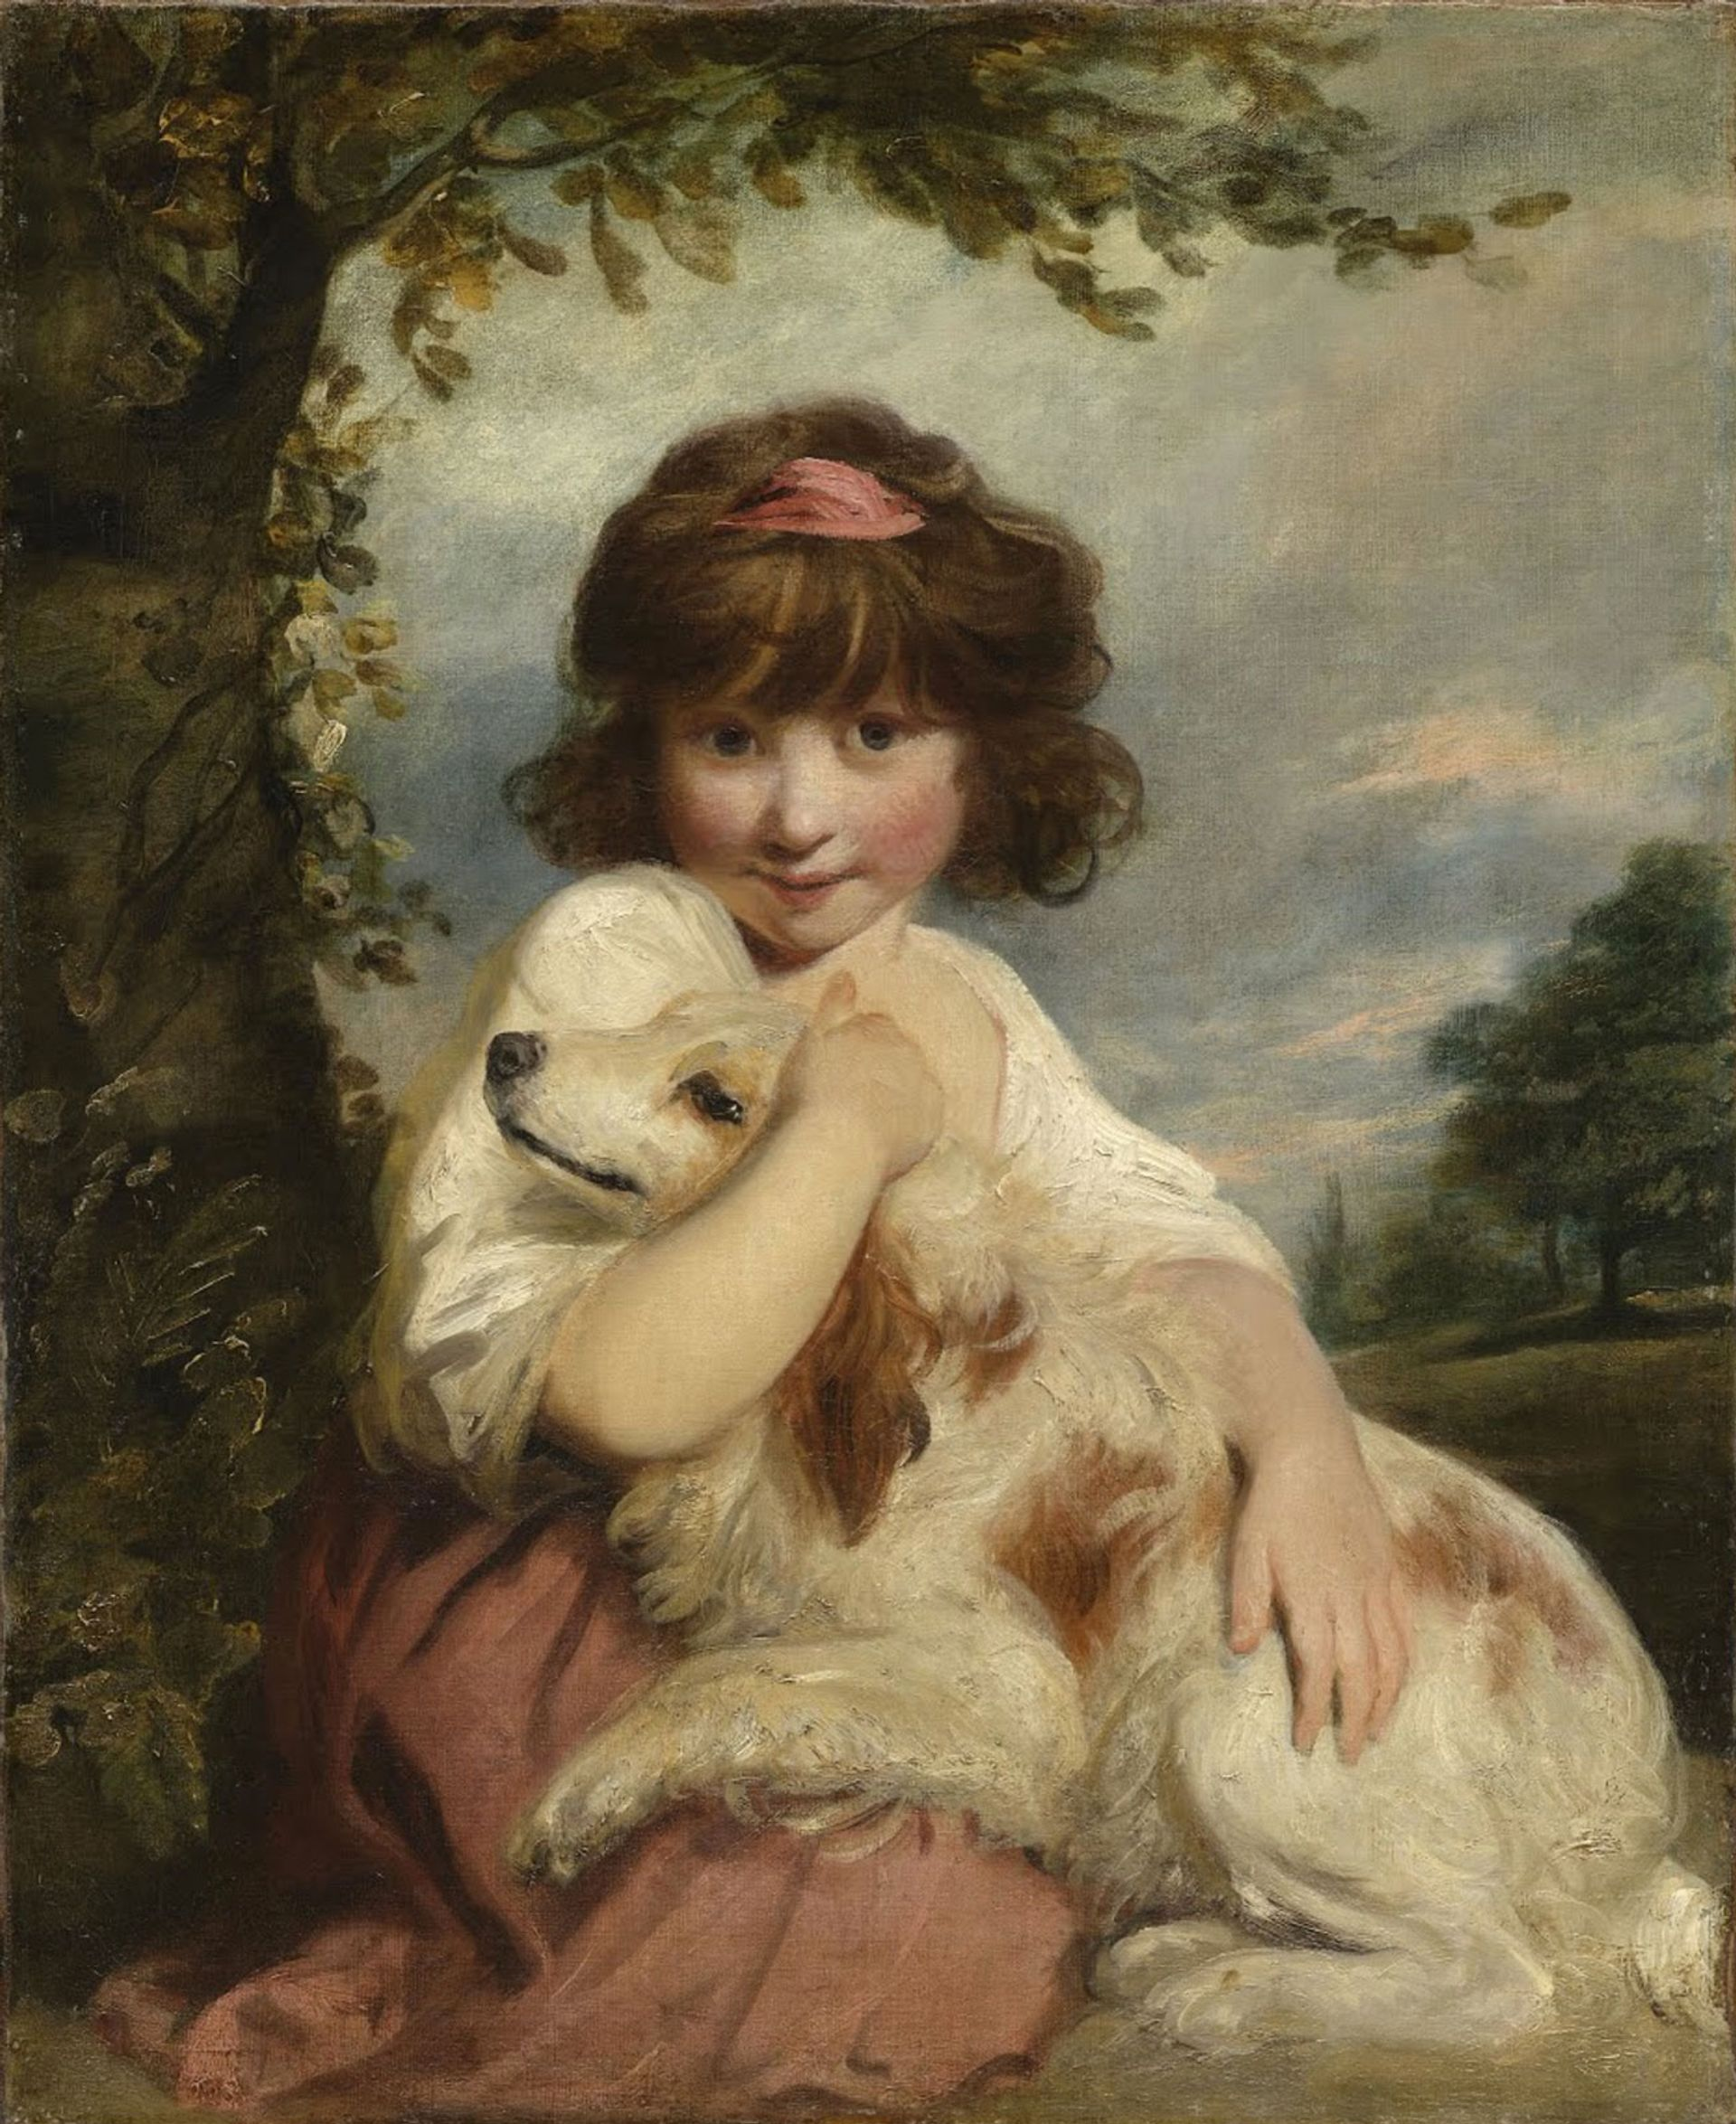 """Art Recovery International alleges that Joshua Reynolds's the """"Portrait of Miss Mathew, later Lady Elizabeth Mathew, sitting with her dog before a landscape"""" was stolen from the home of Sir Henry and Lady Price in Newick, East Sussex, in 1984 Courtesy of Art Recovery International"""